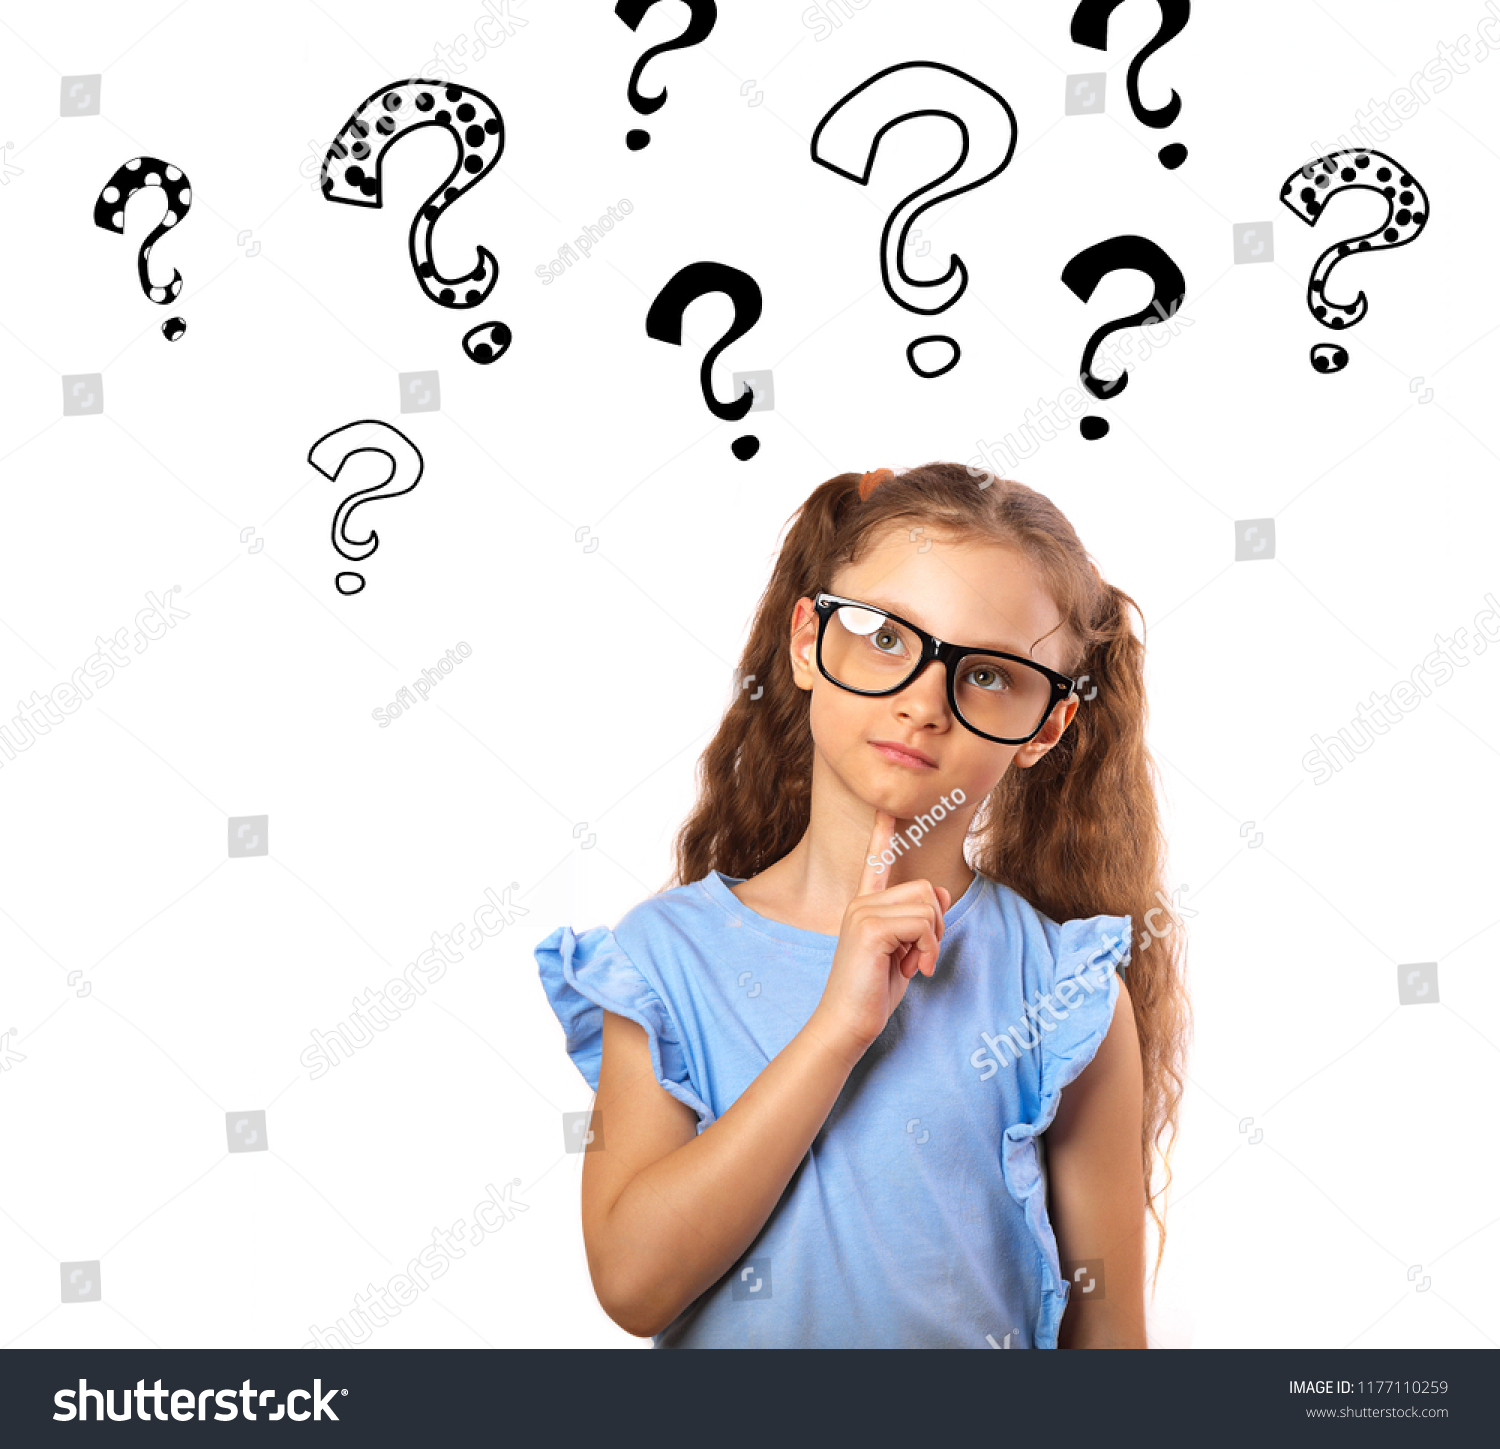 b360f40ddc Fun happy girl in eyeglasses thinking and looking up on many questions mark  illustration above the